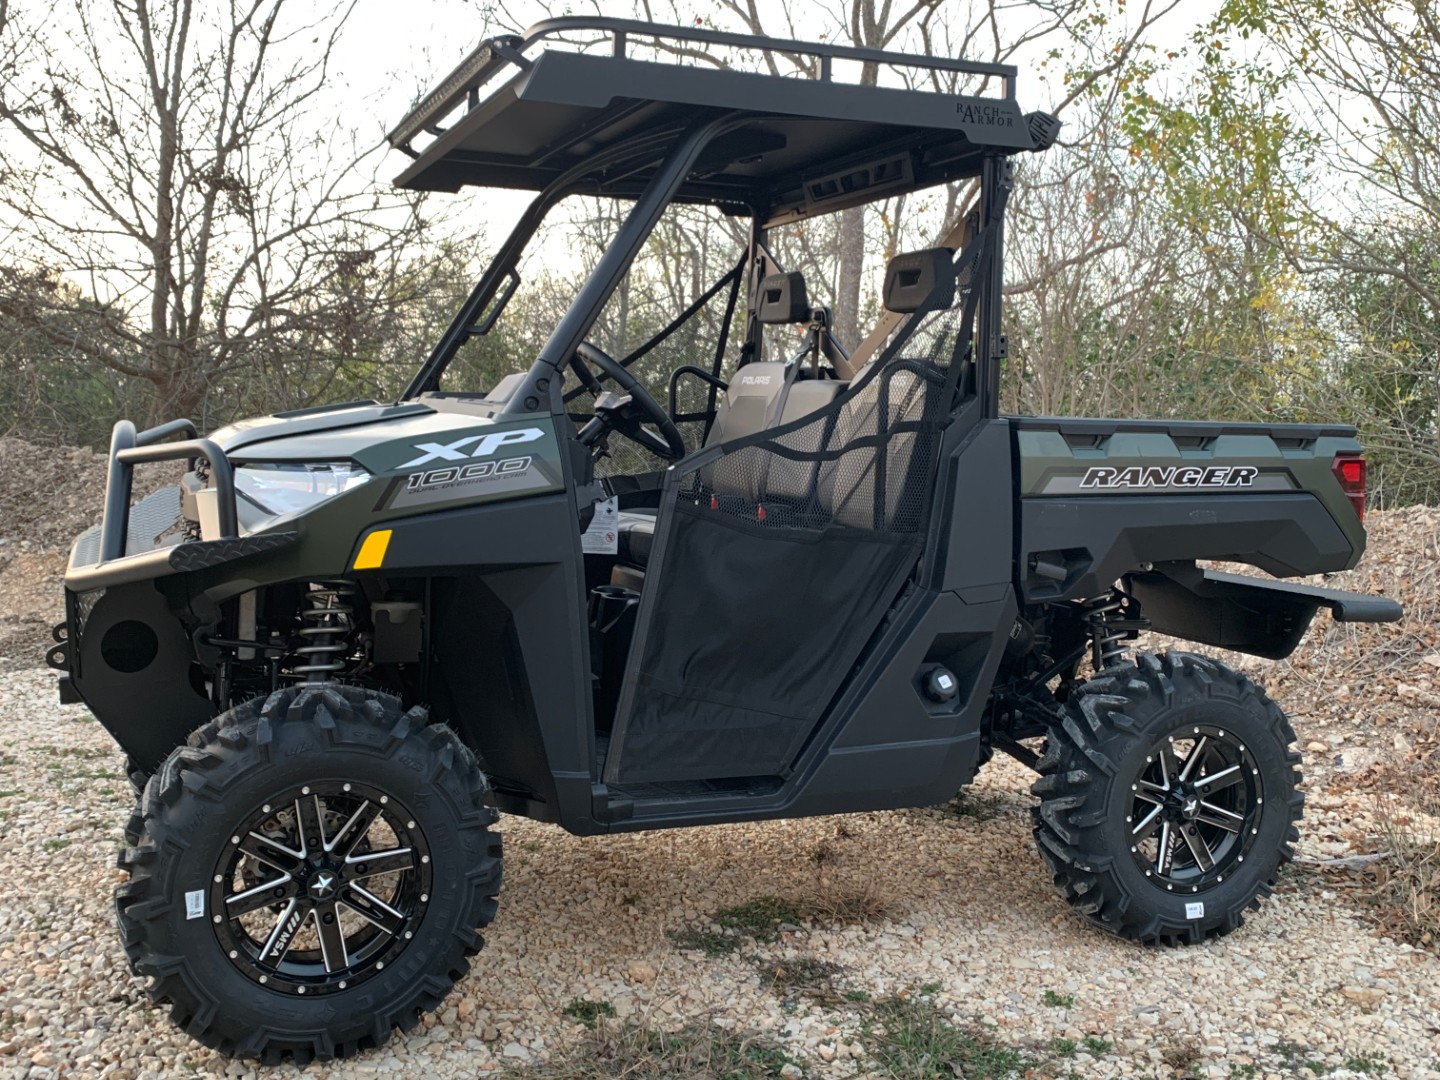 polaris-ranger-1000-pro-fit-metal-roof-by-ranch-armor.jpg